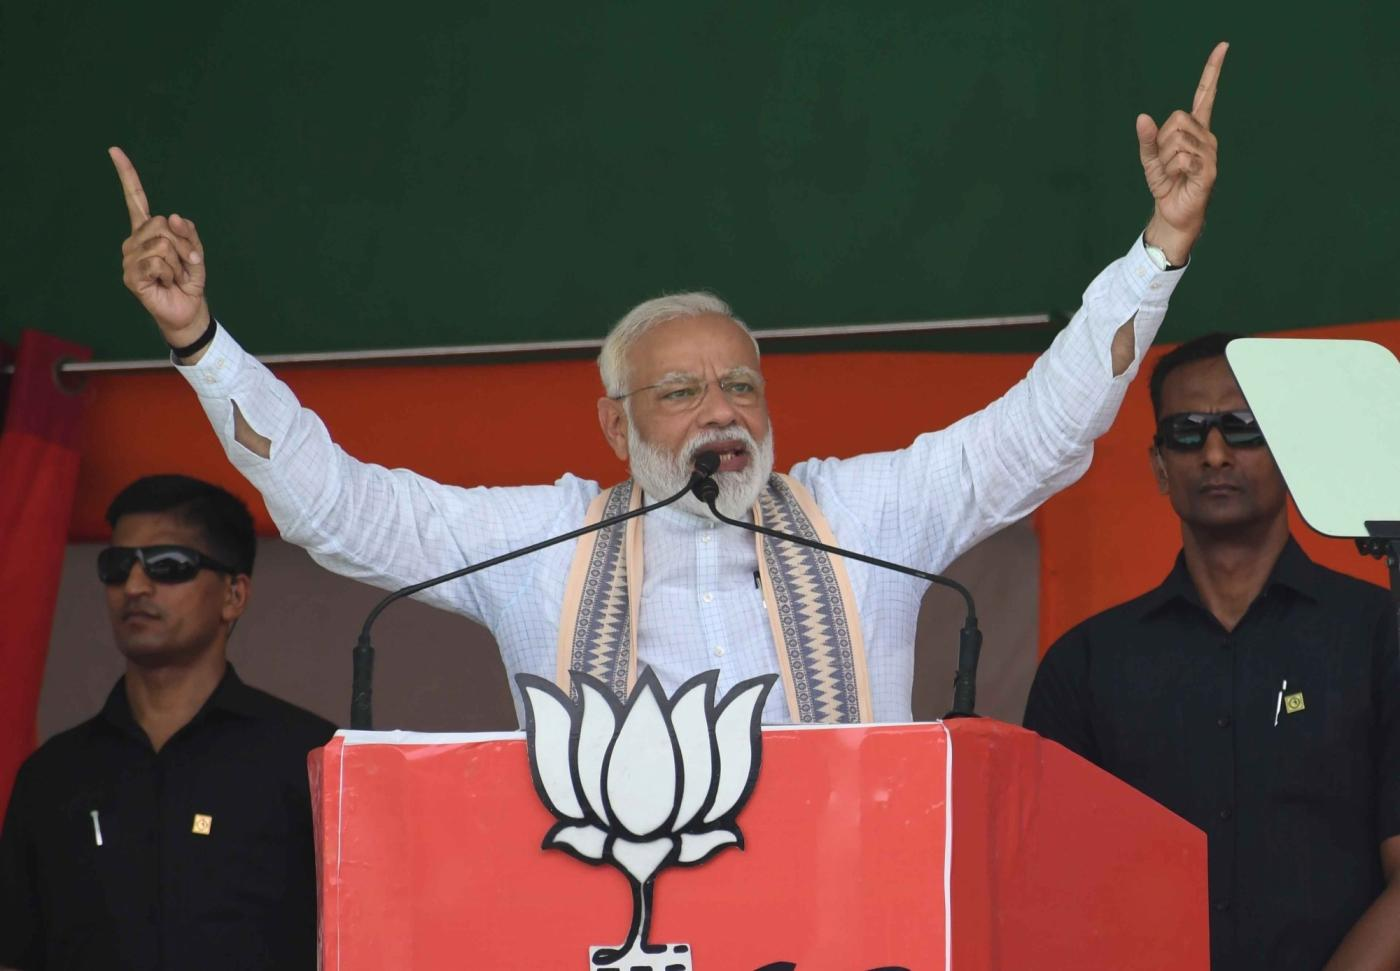 Muzaffarpur: Prime Minister Narendra Modi addresses during a BJP rally in Bihar's Muzaffarpur on April 30, 2019. (Photo: IANS) by .